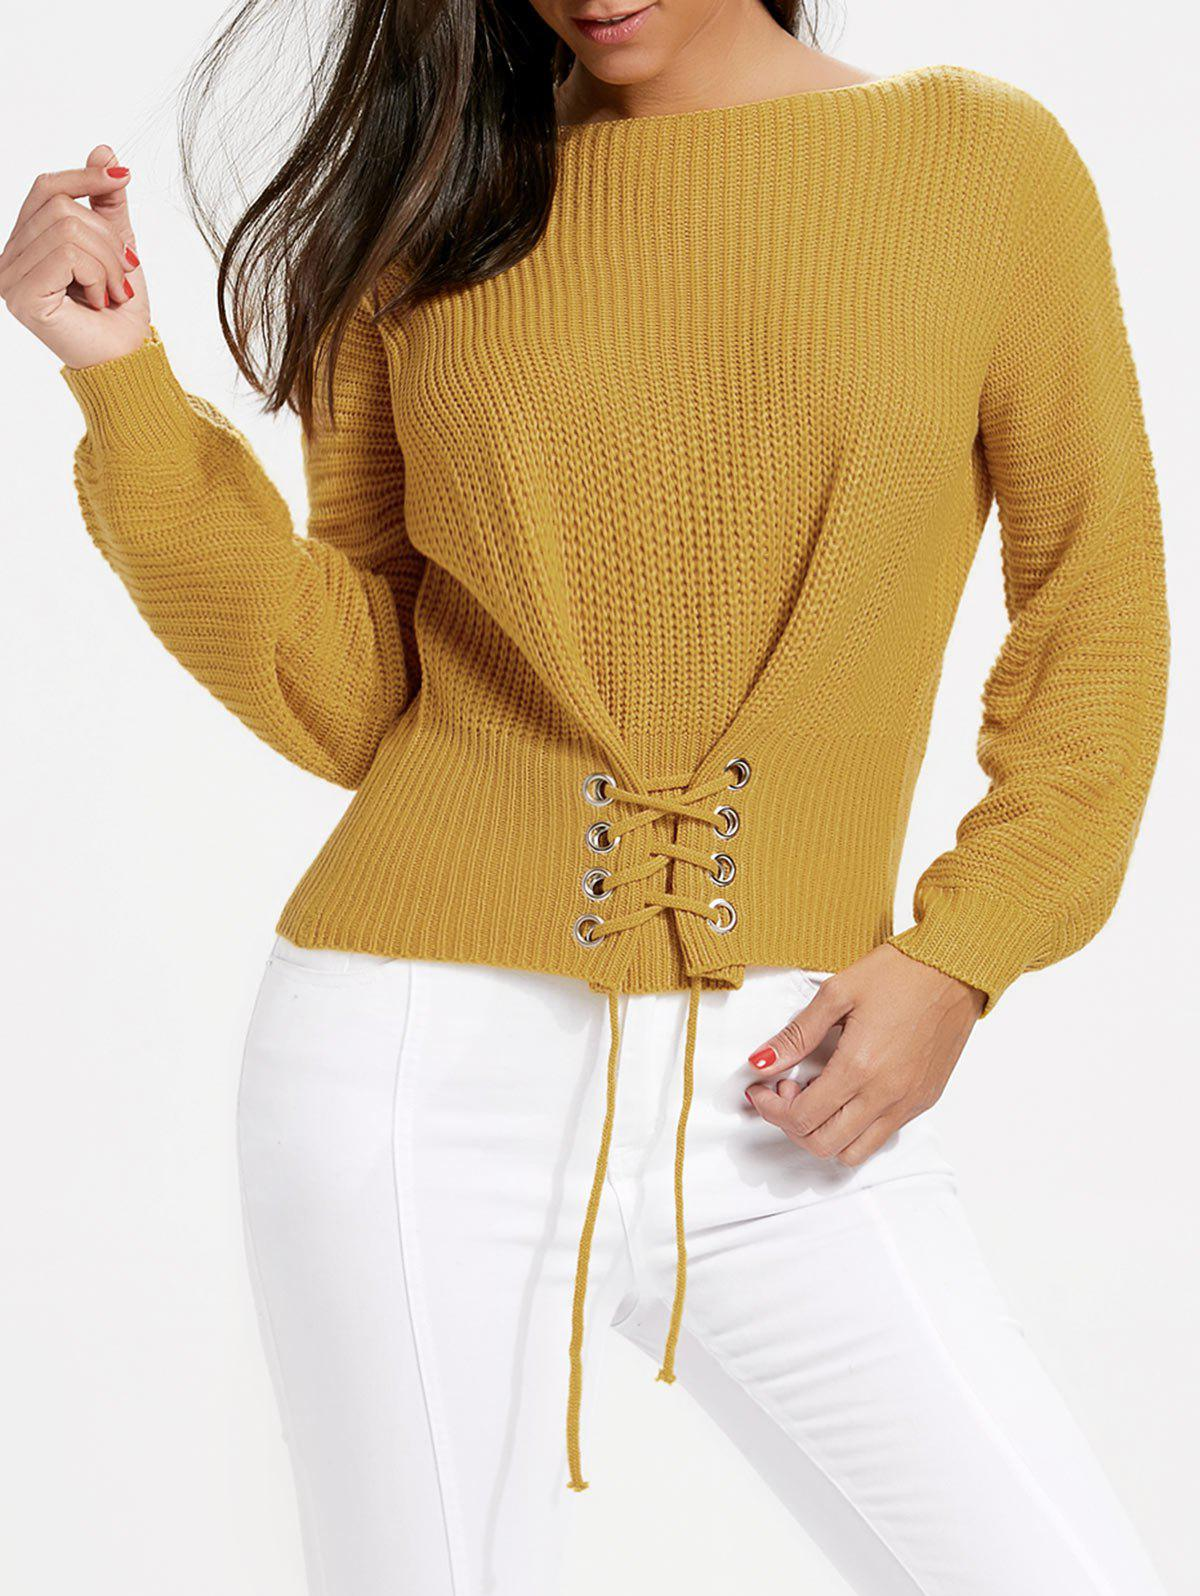 Discount Oversized Boat Neck Lace Up Sweater